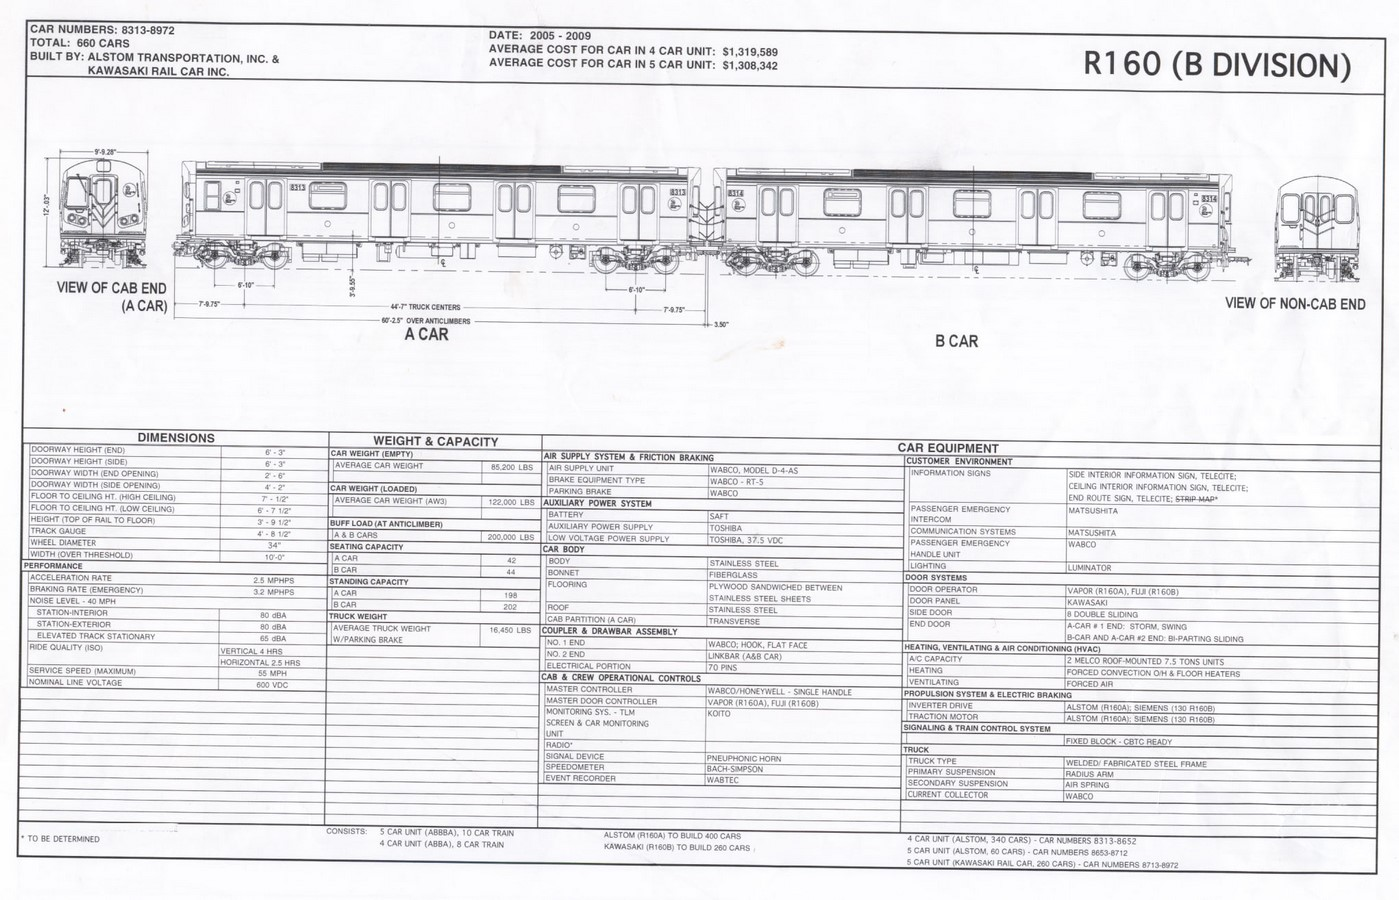 Documentaries for Architects: Mega factories super subway cars - Sheet1